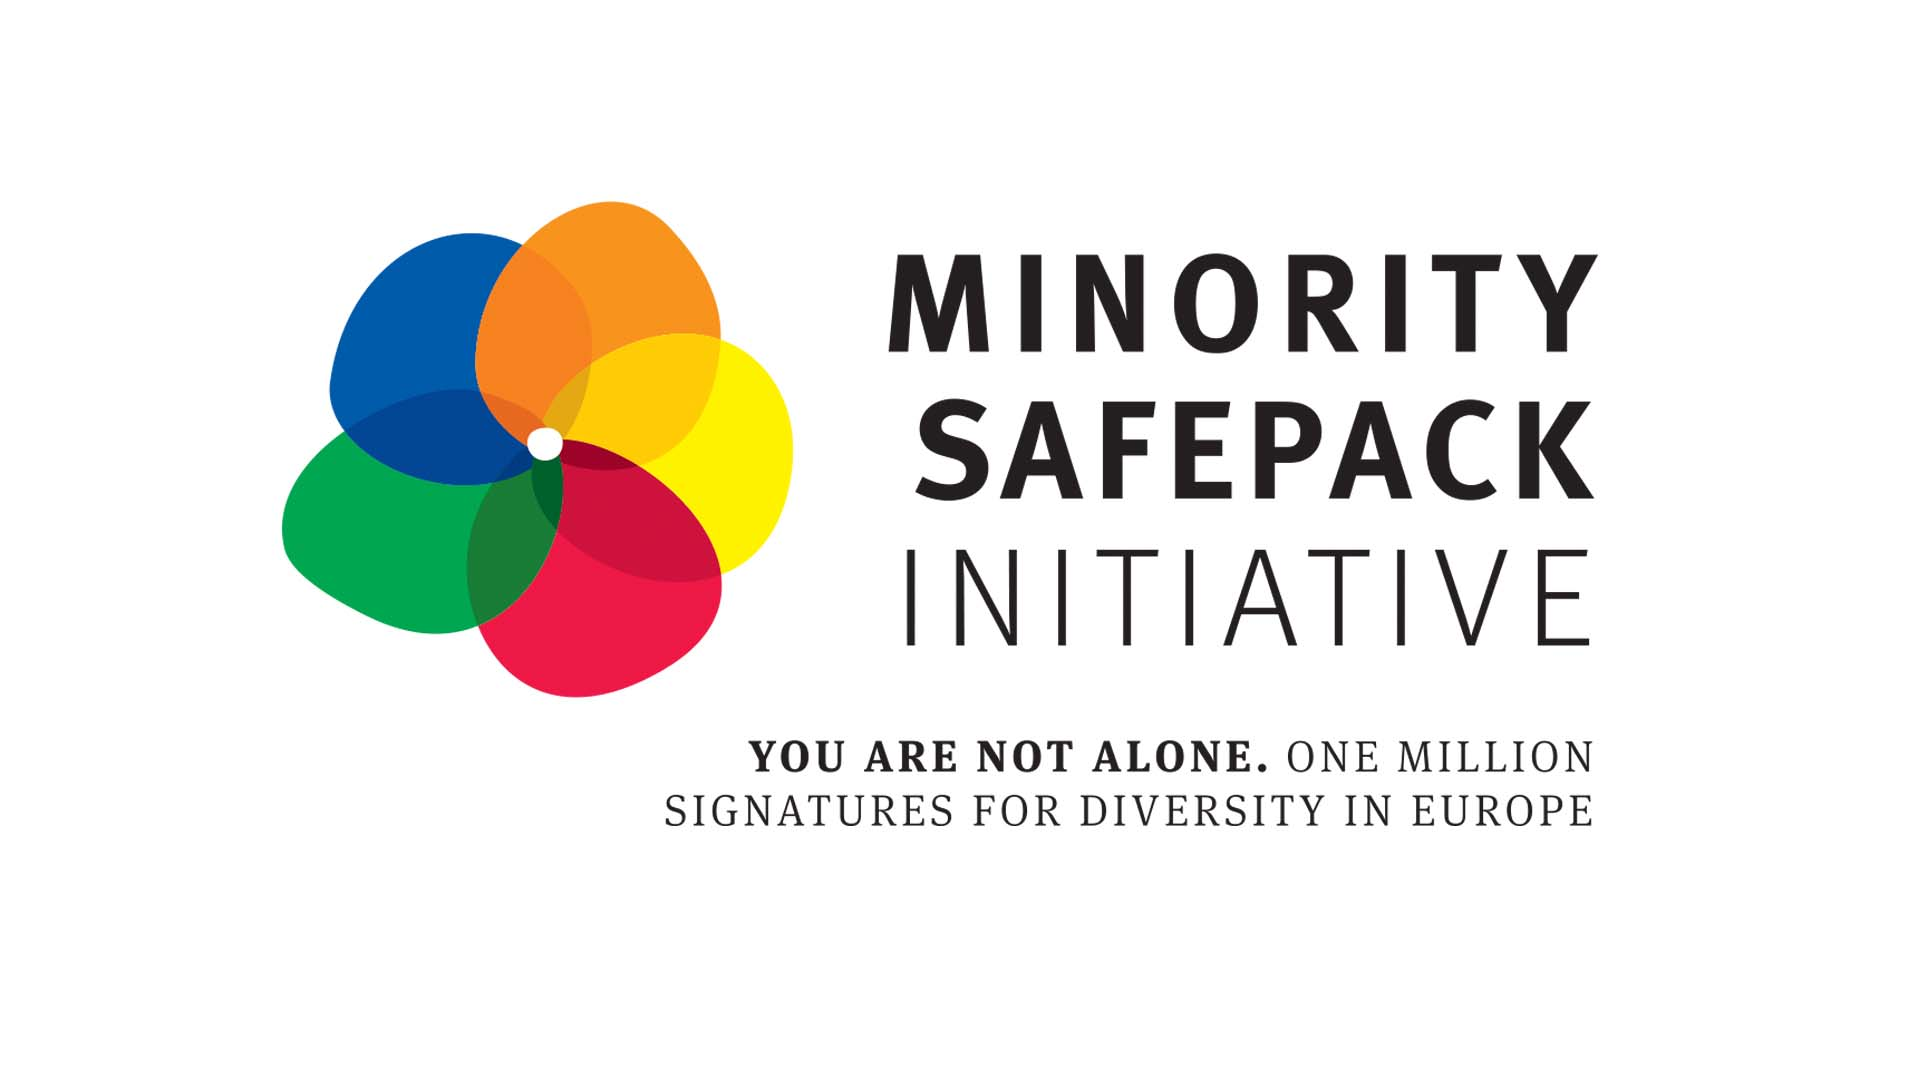 EFA Statement on the Commission's Response to the Minority SafePack Initiative